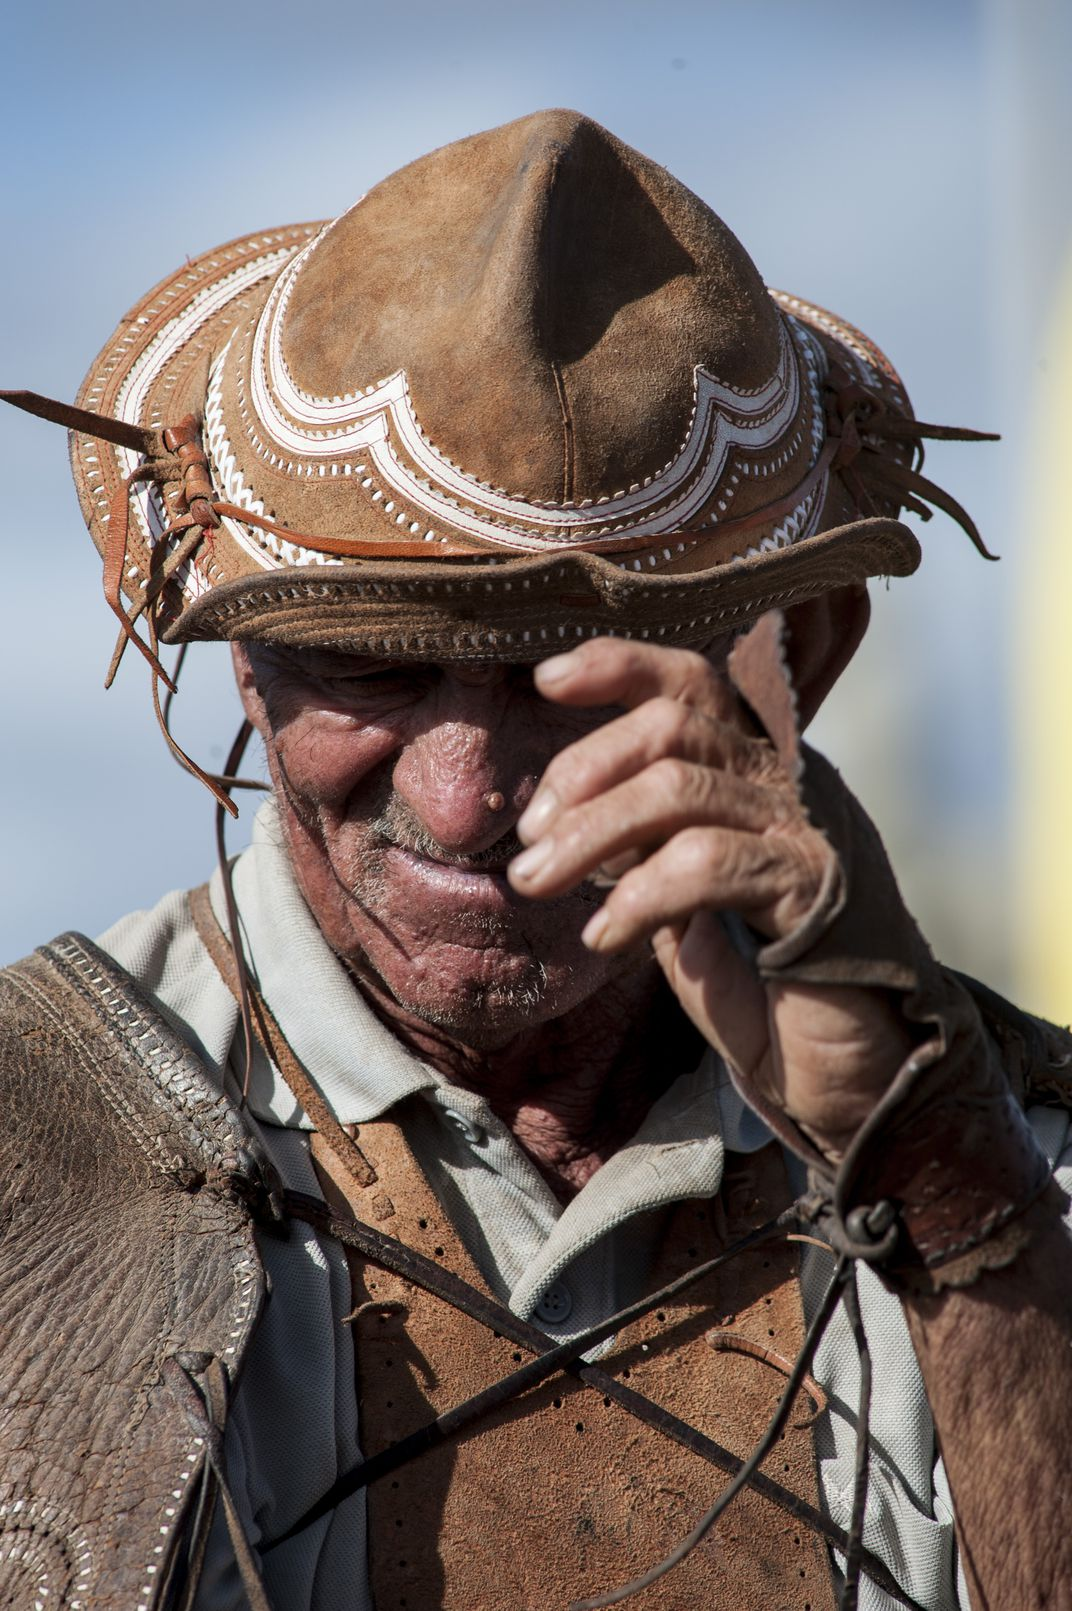 Vaqueiro is the brazilian name for cowboy. This particularly man 2277b7e3d63